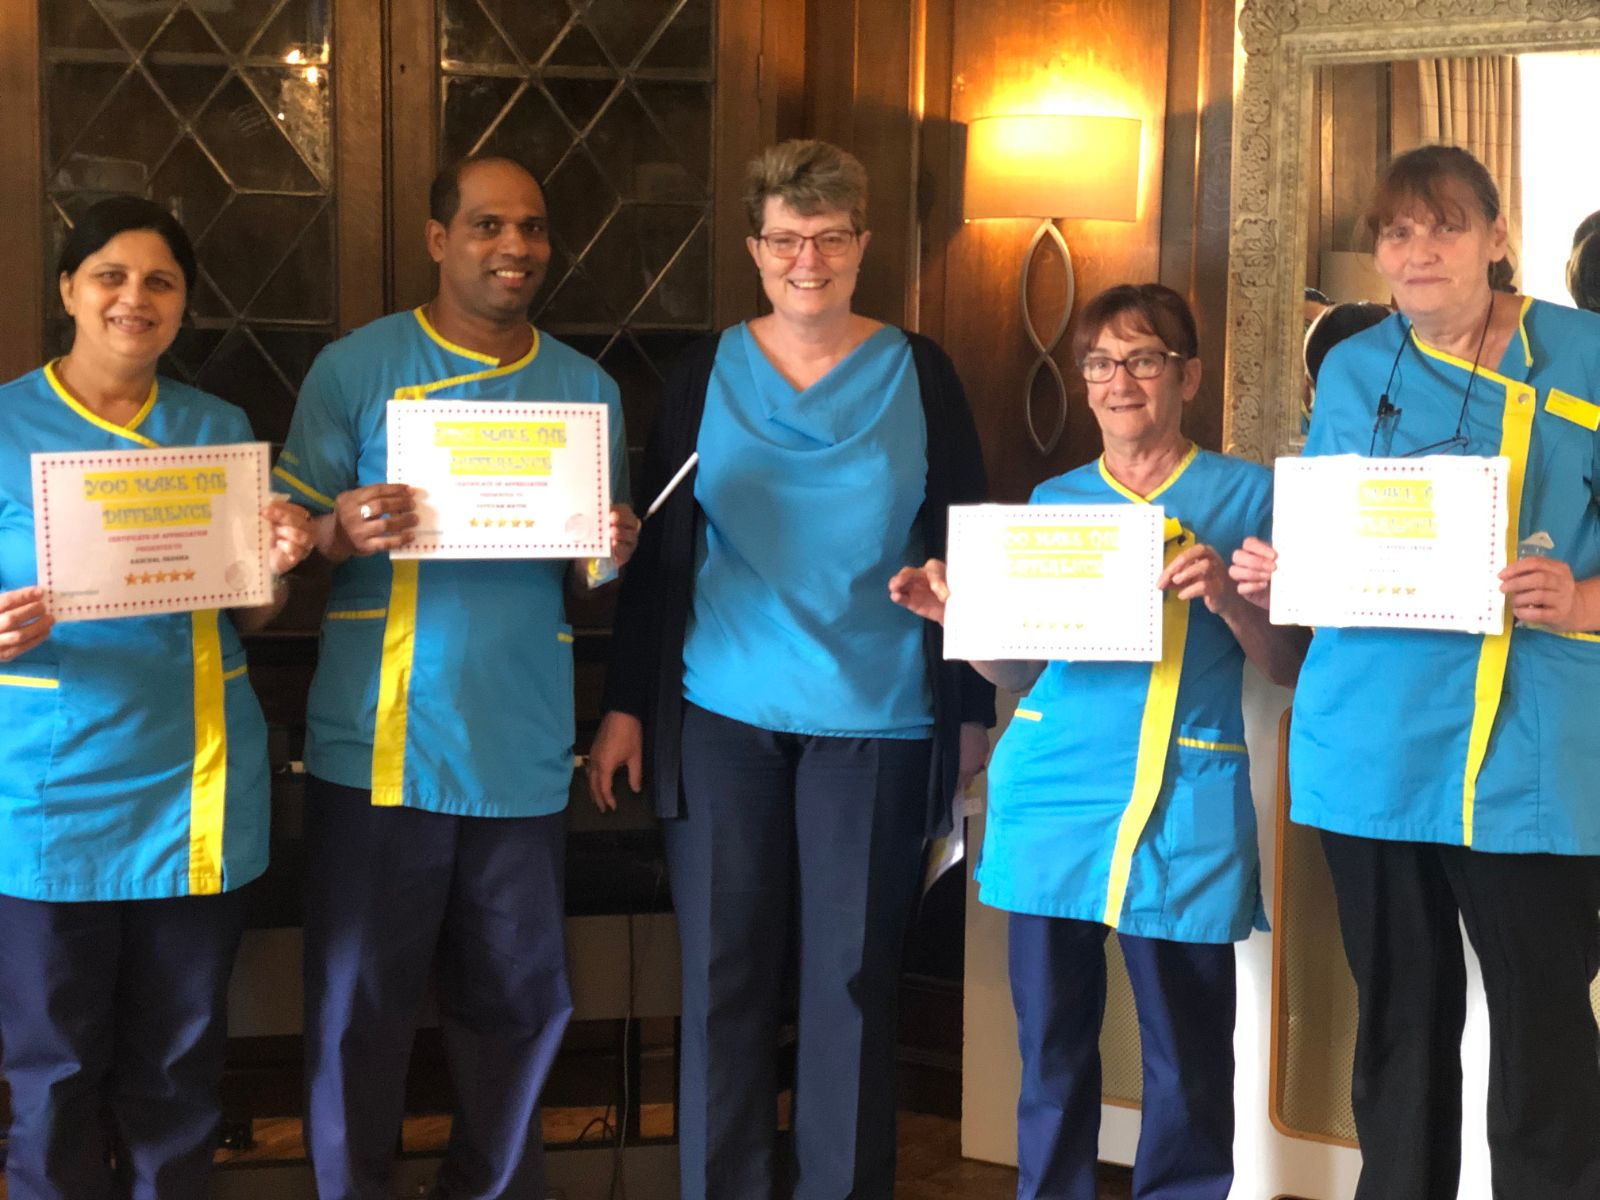 The team at Hungerford Care Home celebrate Carers Week 2019